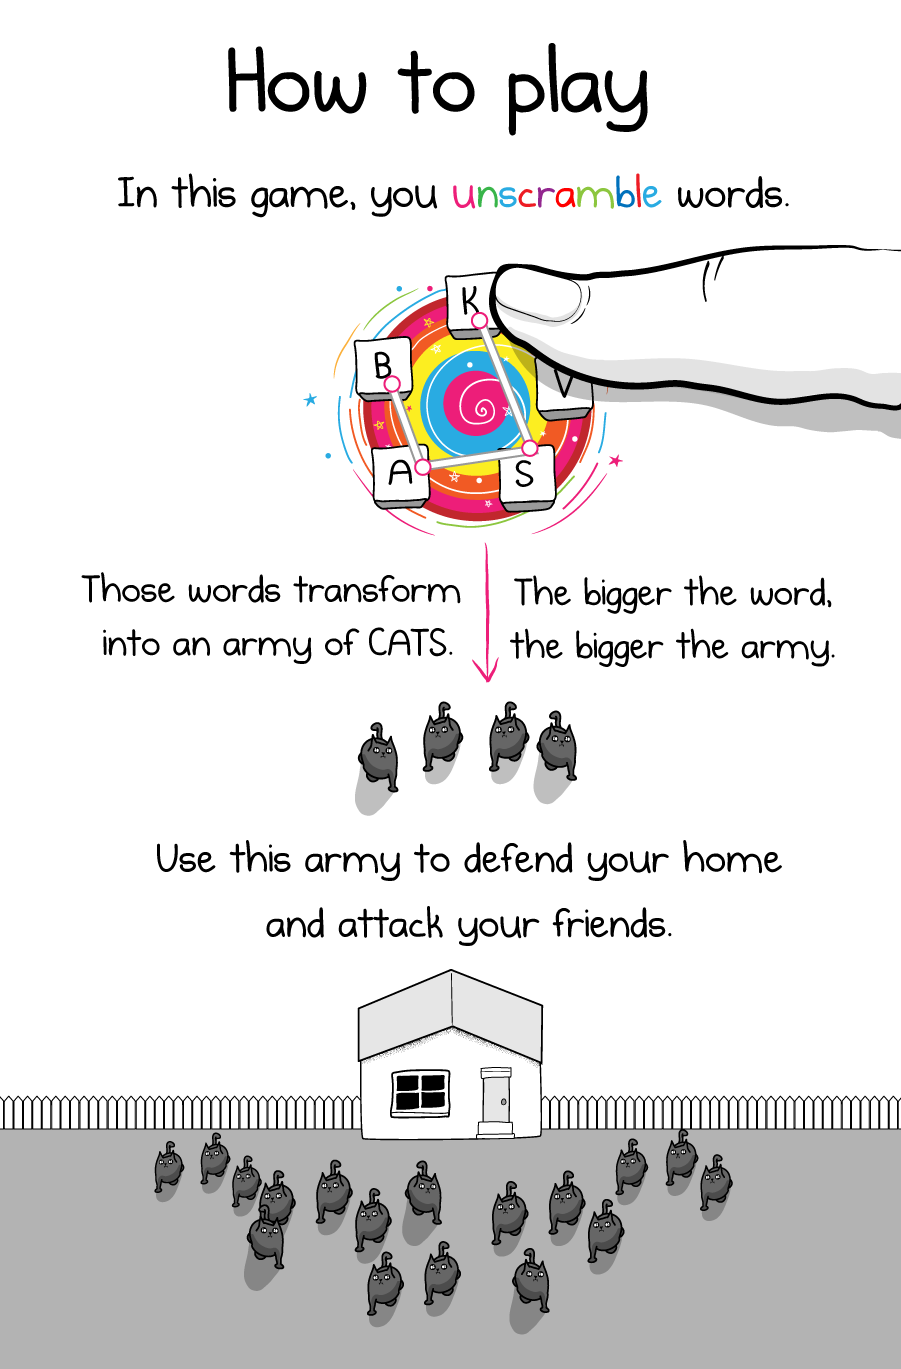 You unscramble words. Those words transform into an army of cats. The bigger the word, the bigger the army.